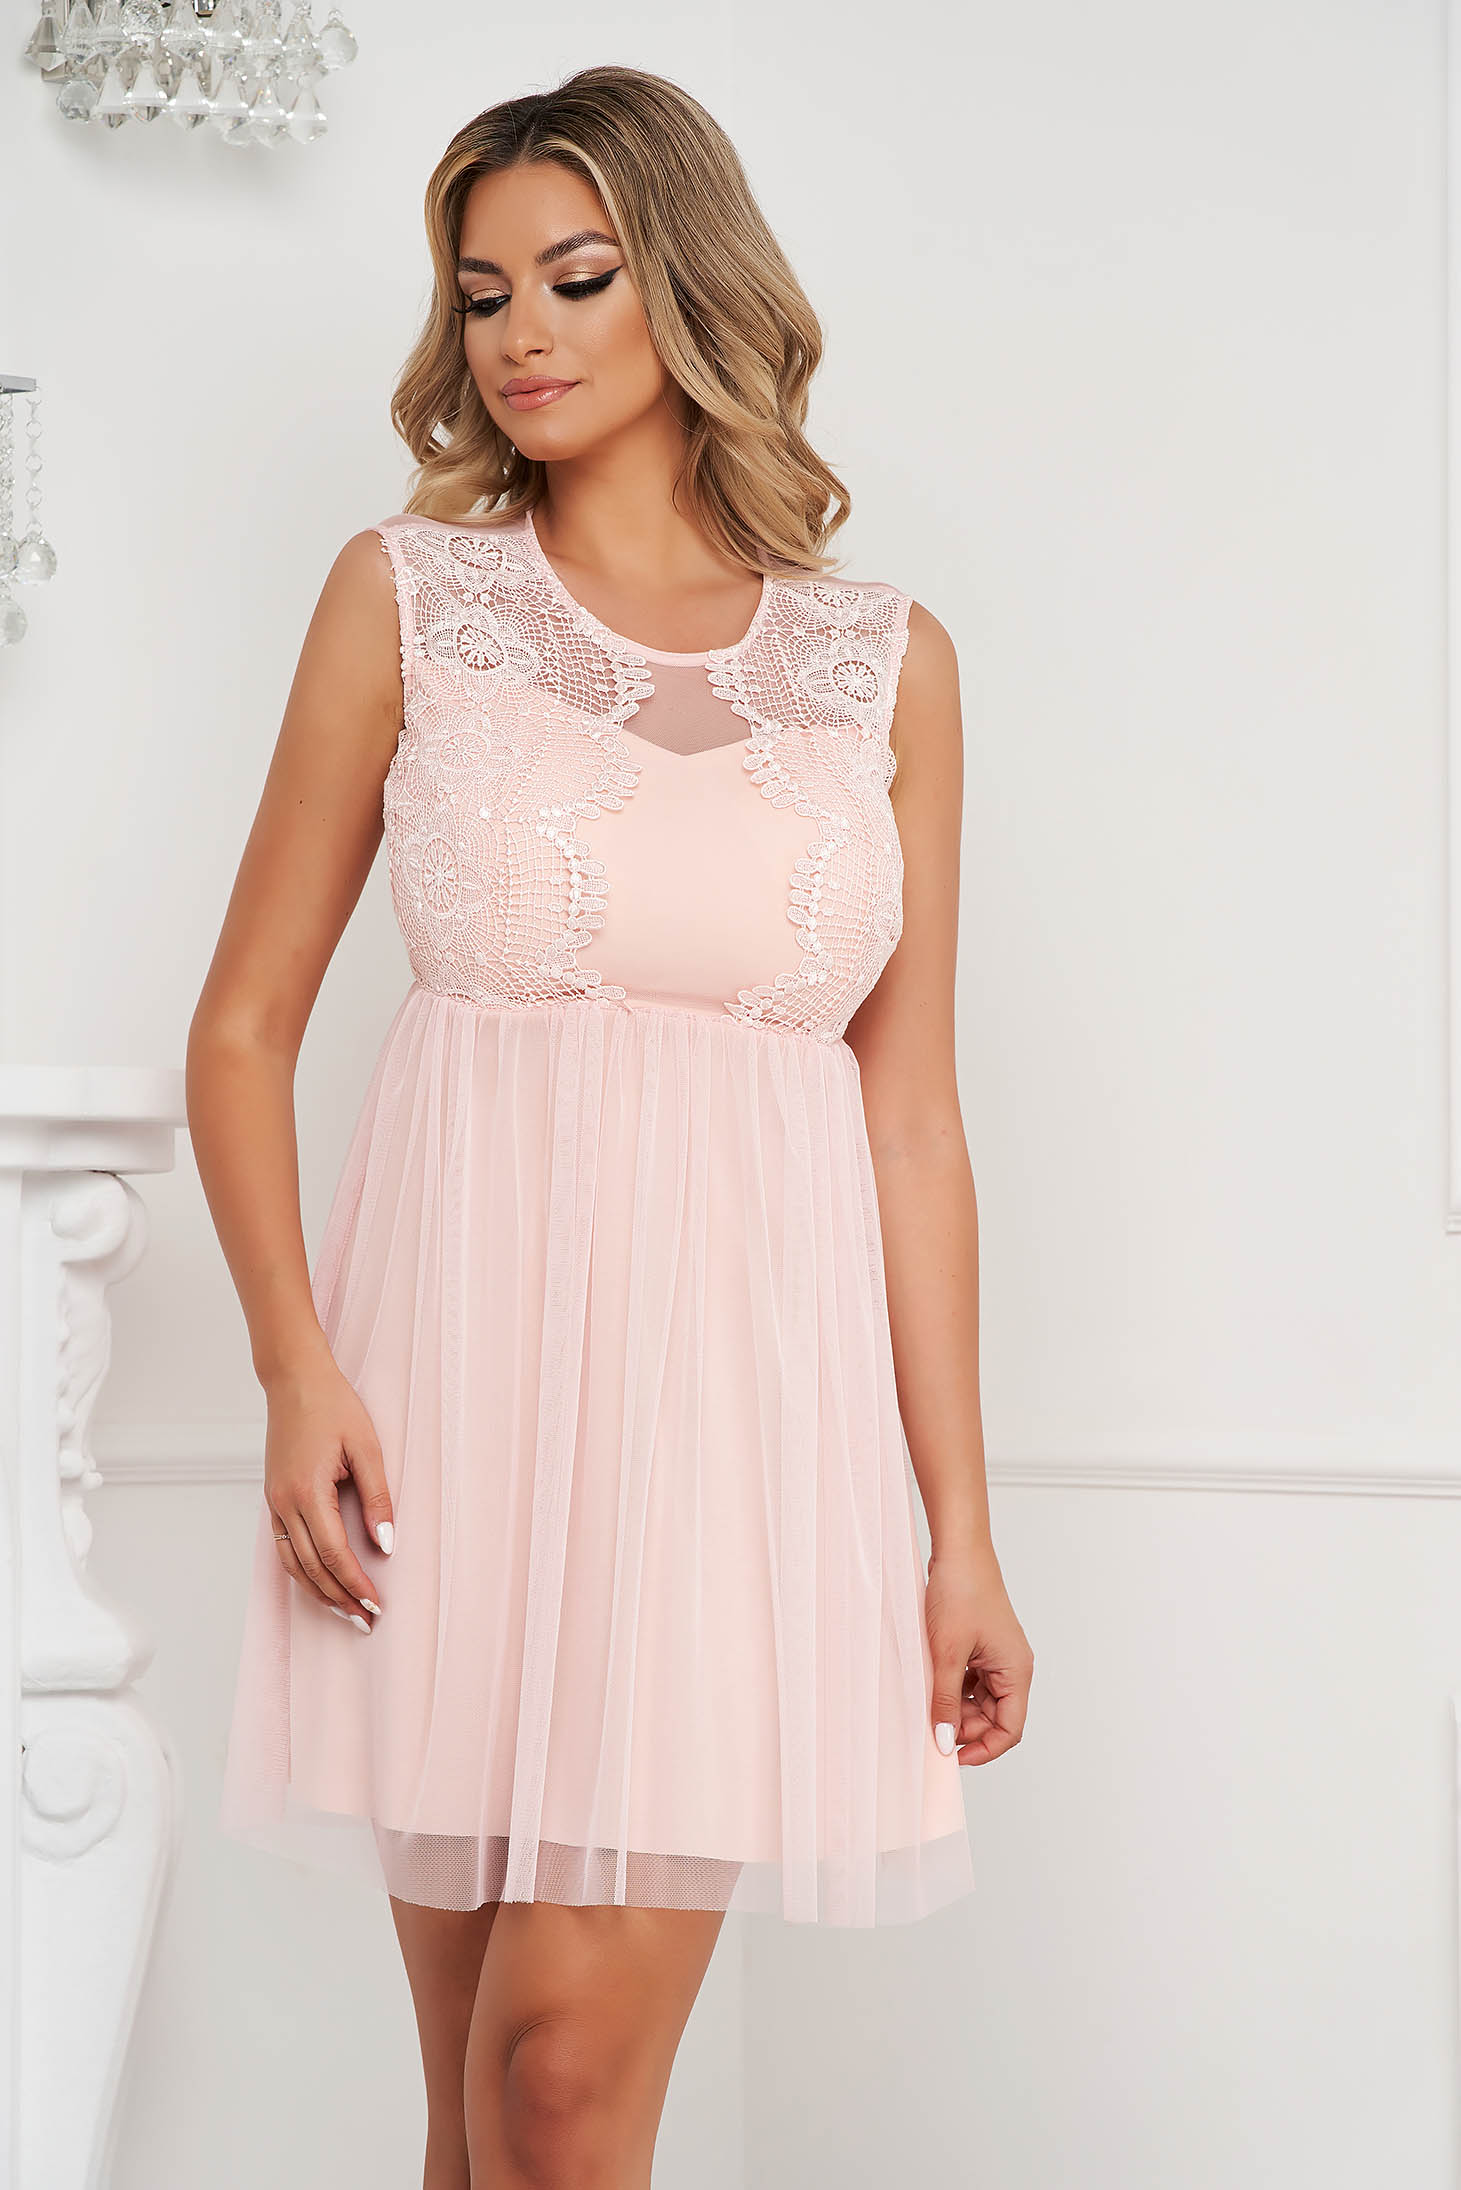 Lightpink dress short cut from tulle laced sleeveless cloche